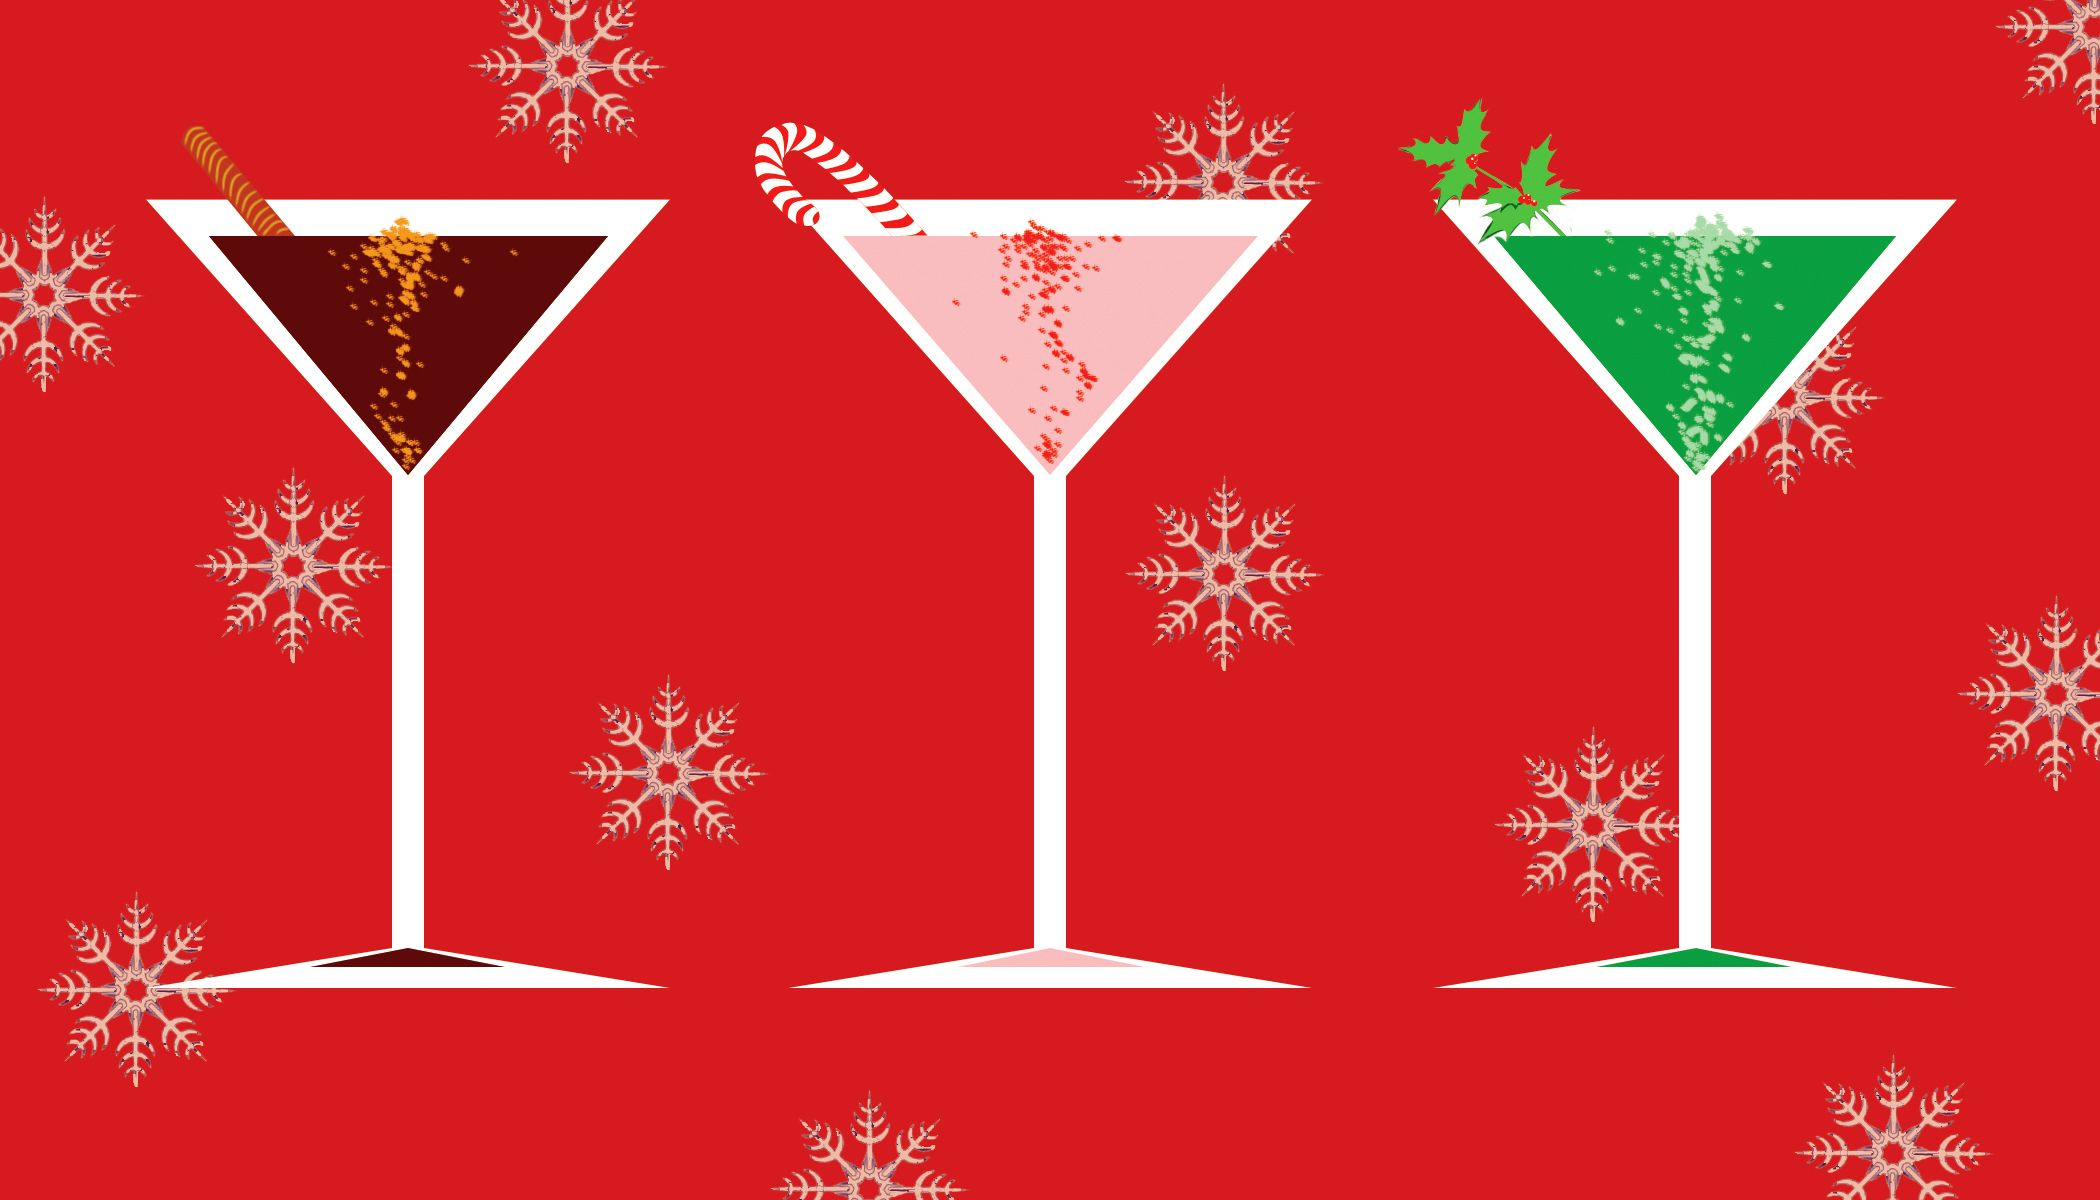 45 awesome holiday cocktail party clipart clipart pinterest rh pinterest com Martini Glass Clip Art Black and White Martini Glass Clip Art Vector